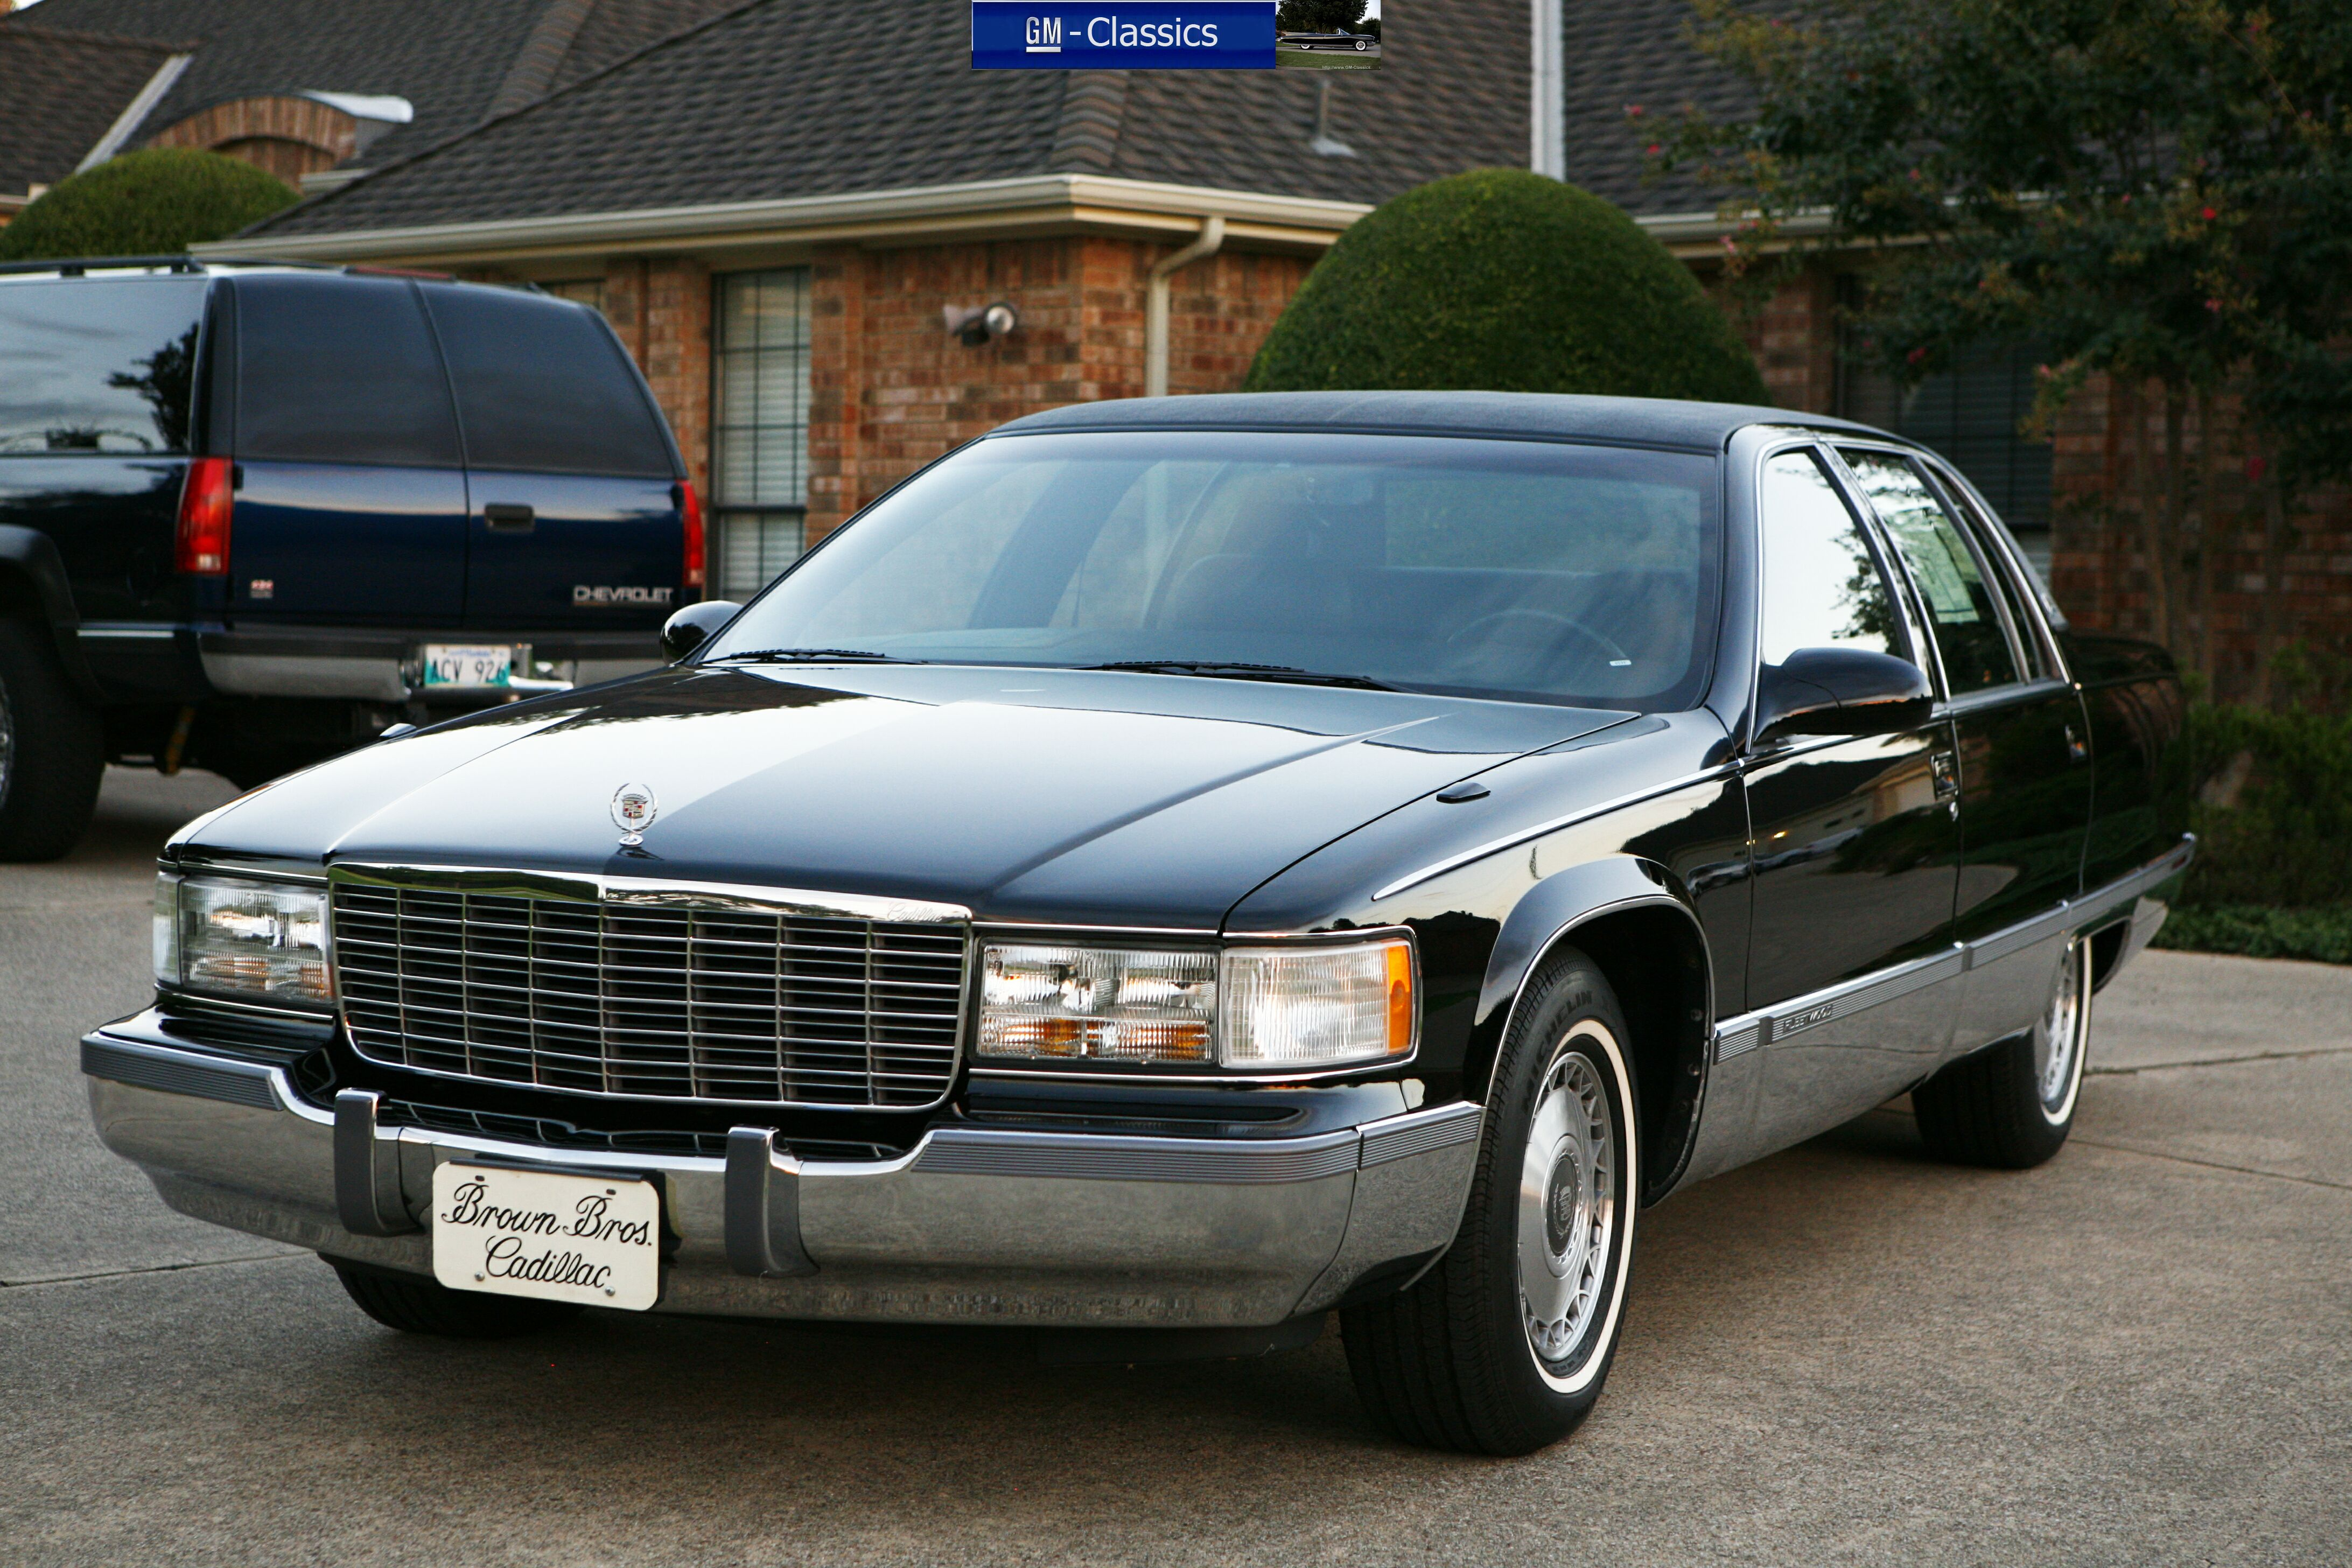 s brougham fleetwood cadillac sale miles htm connell original o only with joseph coupe for